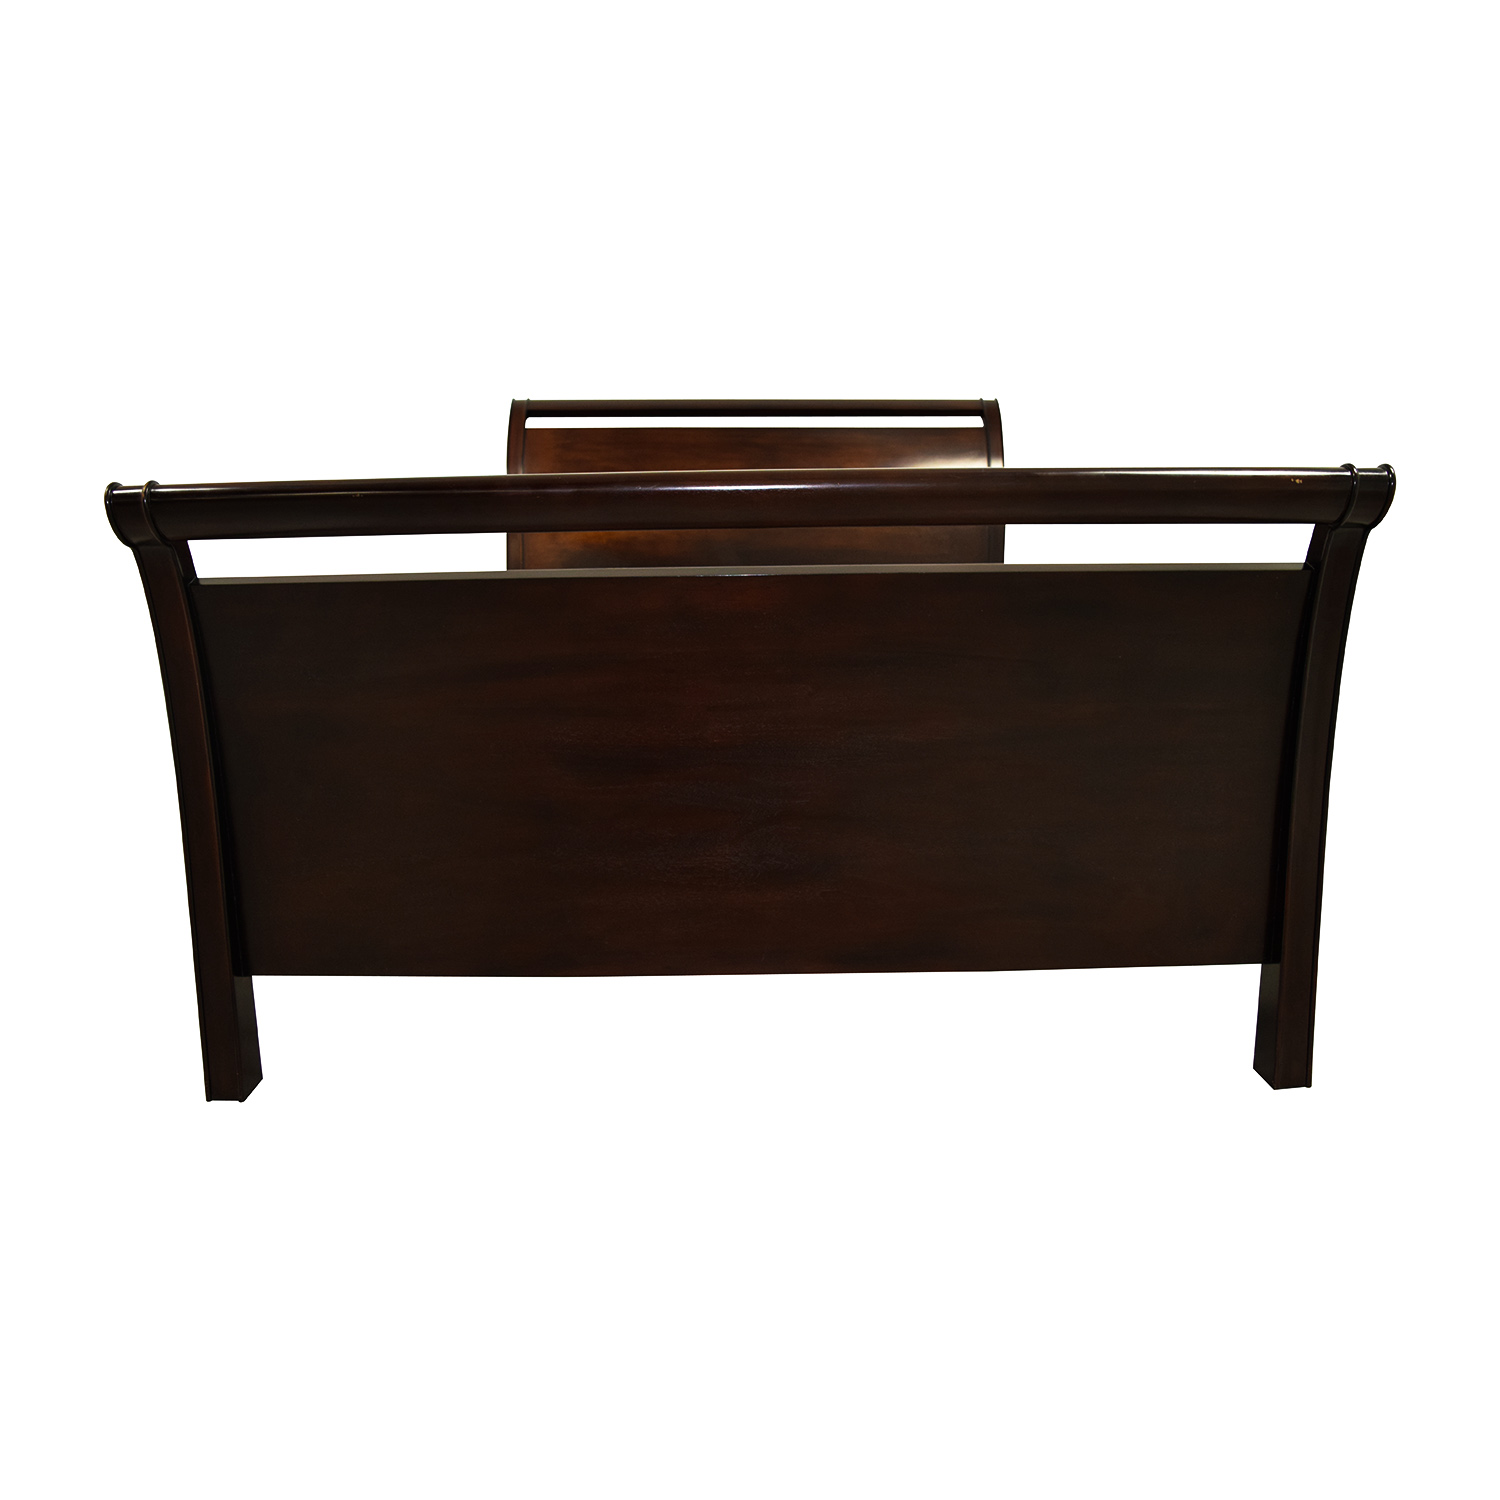 buy Crate and Barrel Crate and Barrel Wood Queen Sleigh Bed online